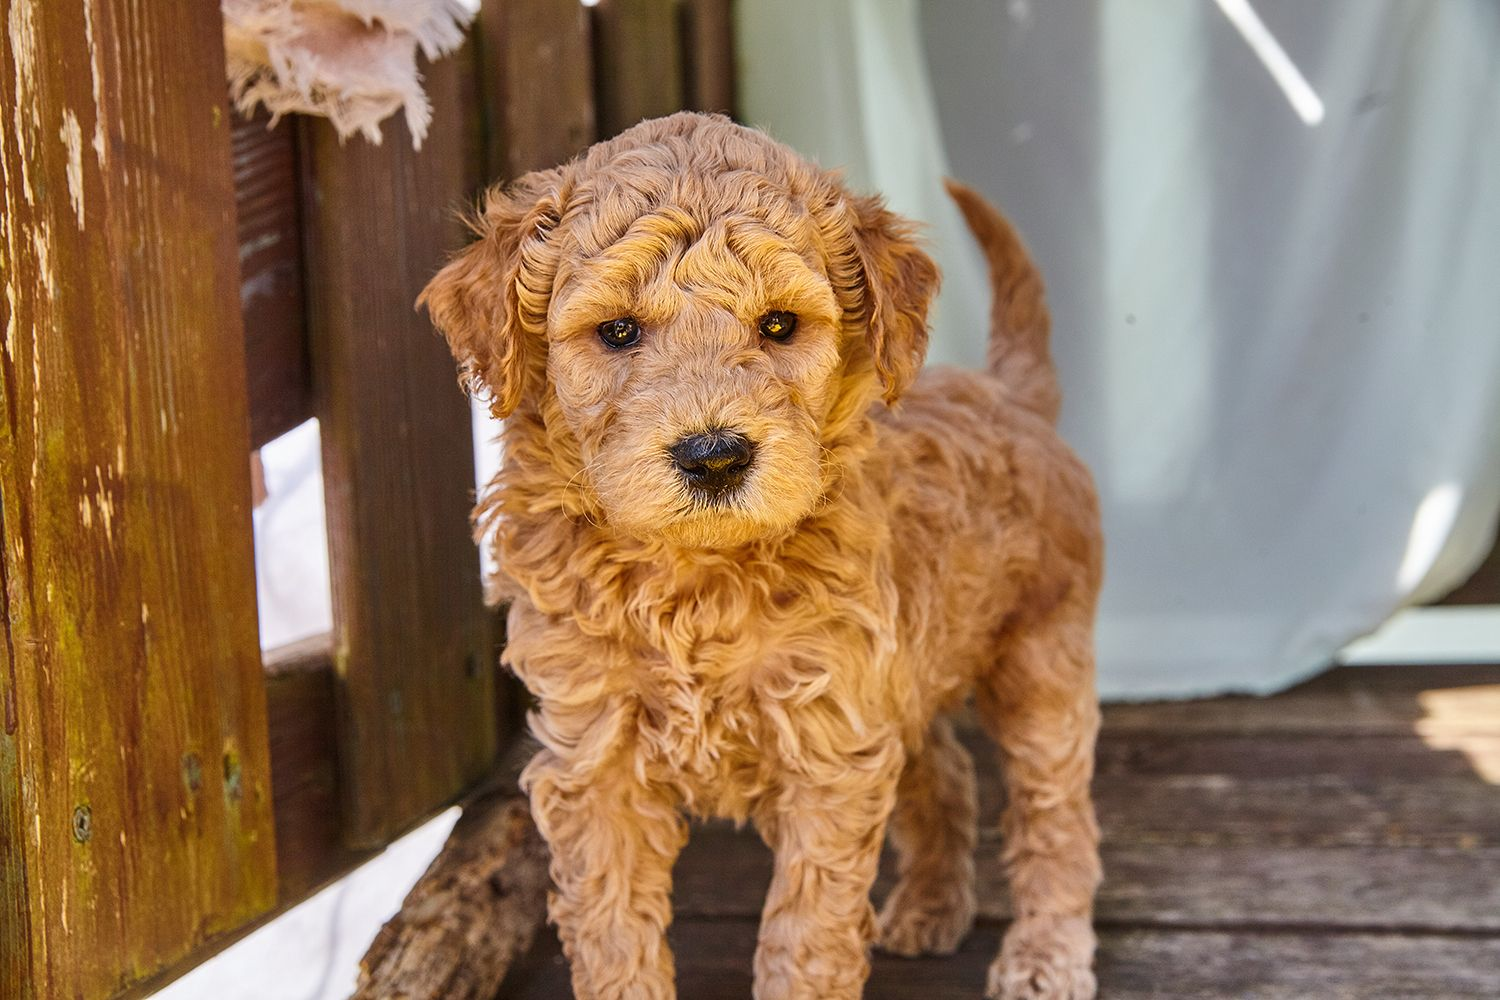 Here At Our Family Puppy We Have A No Puppy Mill Promise Our Pups Are Vaccinated 2 Times And Dewormed Every Two Weeks So The Puppy Mills Puppies Goldendoodle